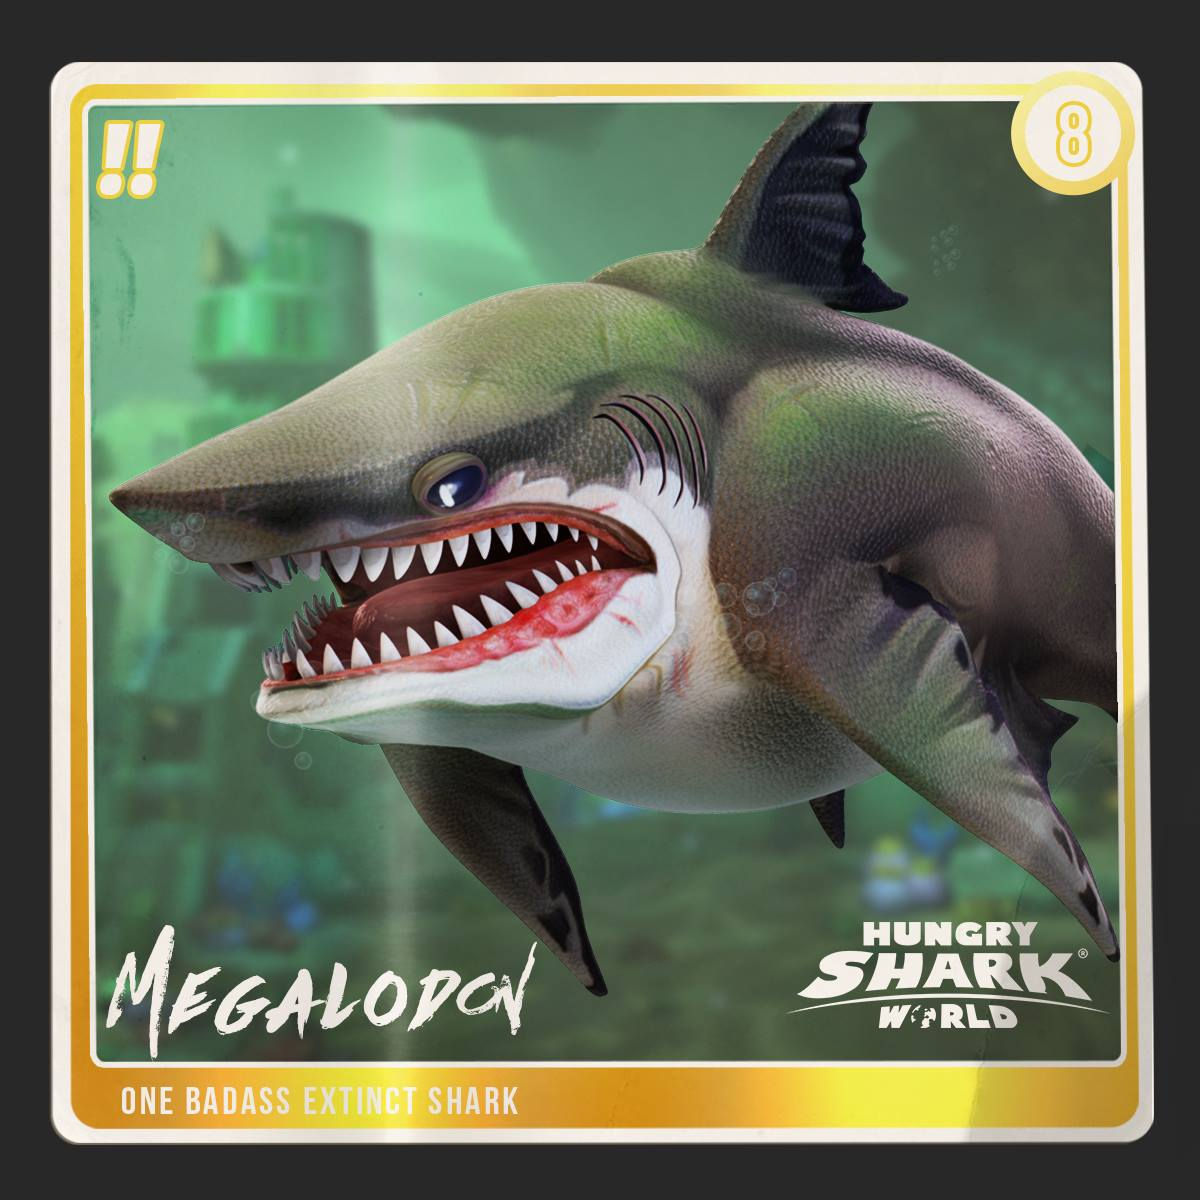 Megalodon world hungry shark wiki fandom powered by wikia megalodon one badass extinct shark altavistaventures Images